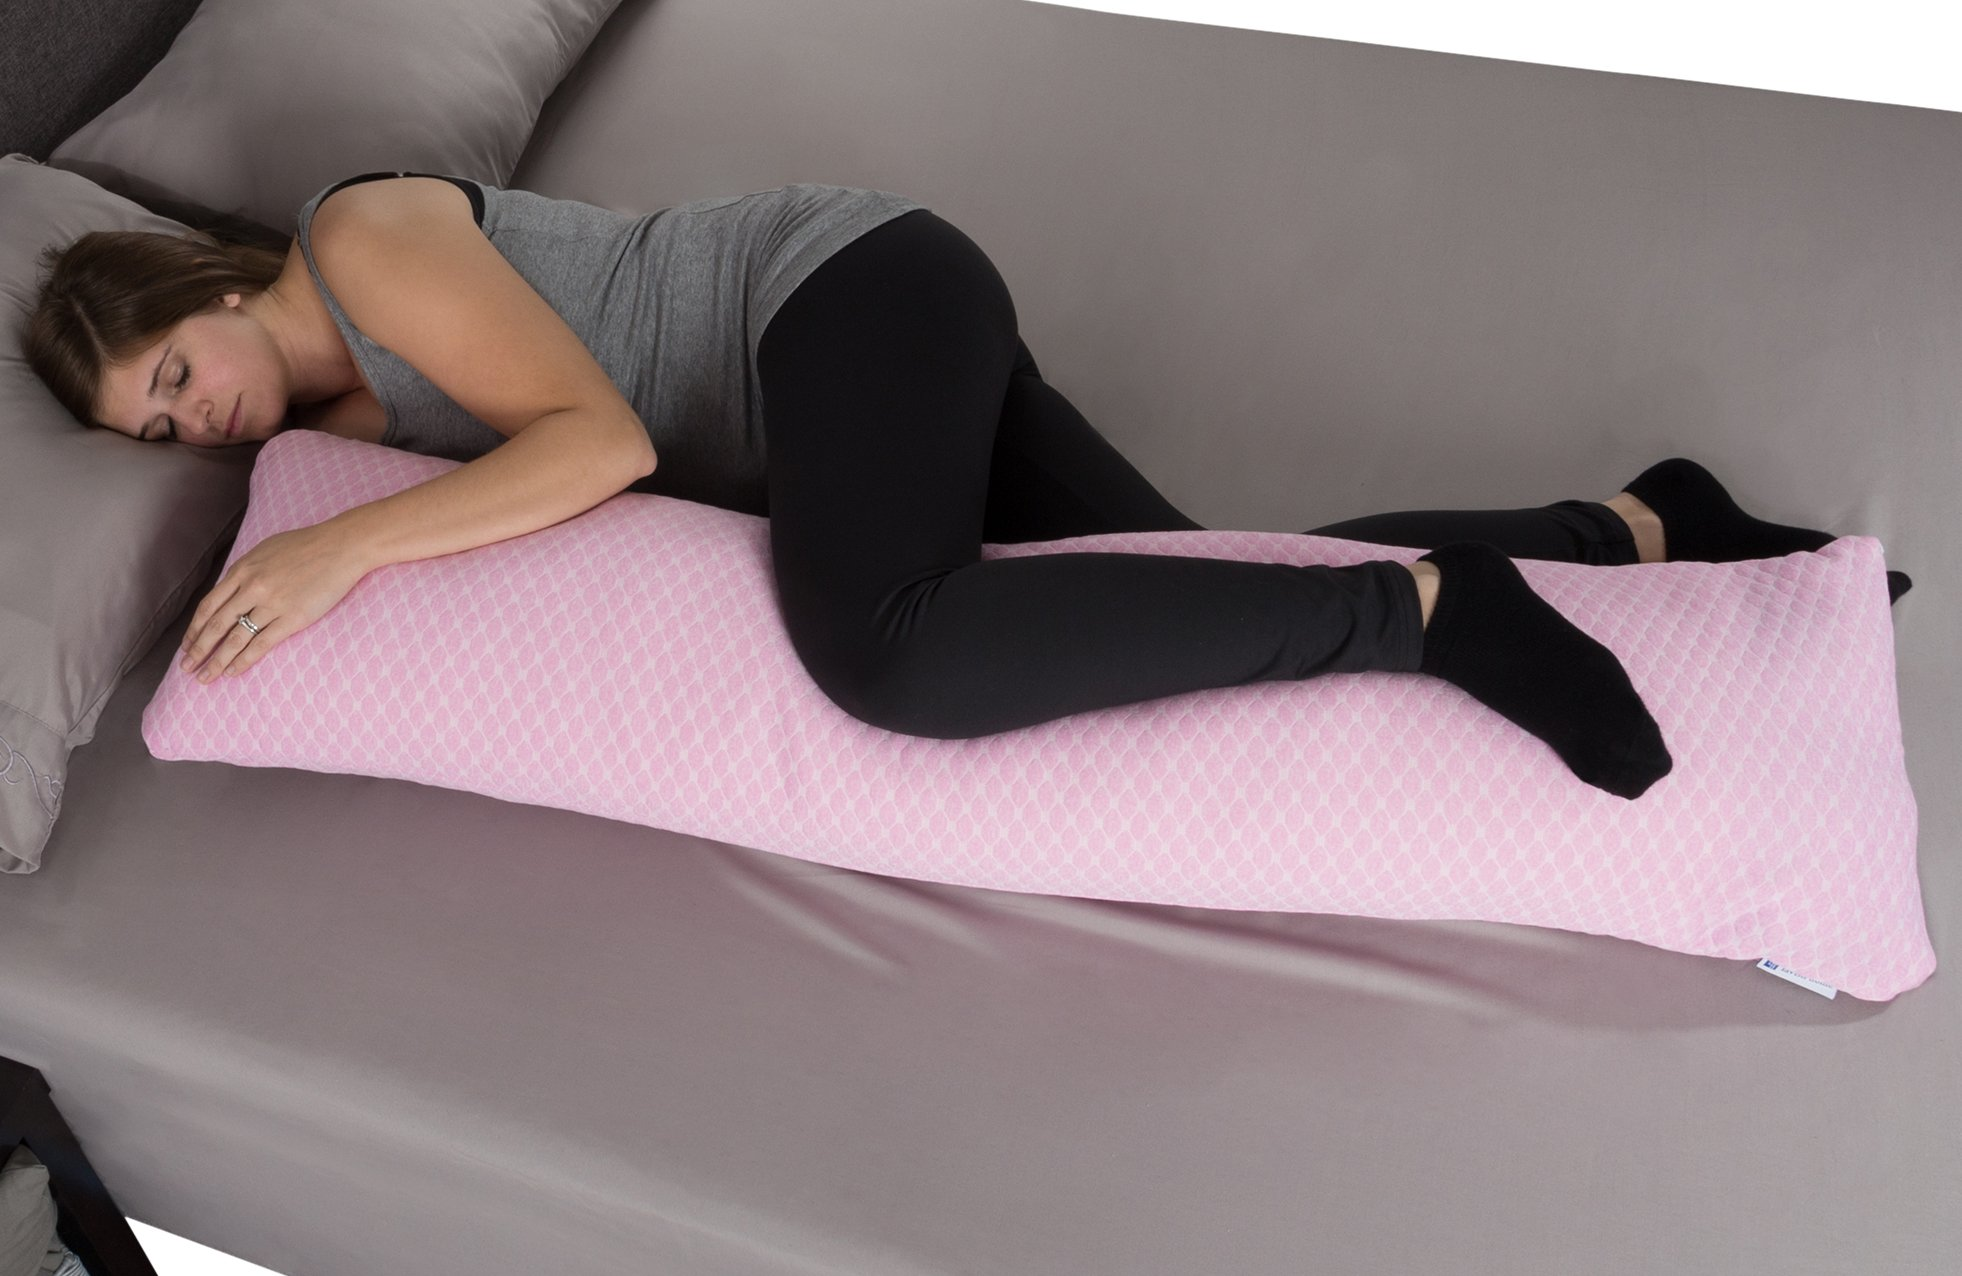 Lavish Home Memory Foam Body Pillow- for Side Sleepers, Back Pain, Pregnant Women, Aching Legs and Knees, Hypoallergenic Zippered Protector (Pink)